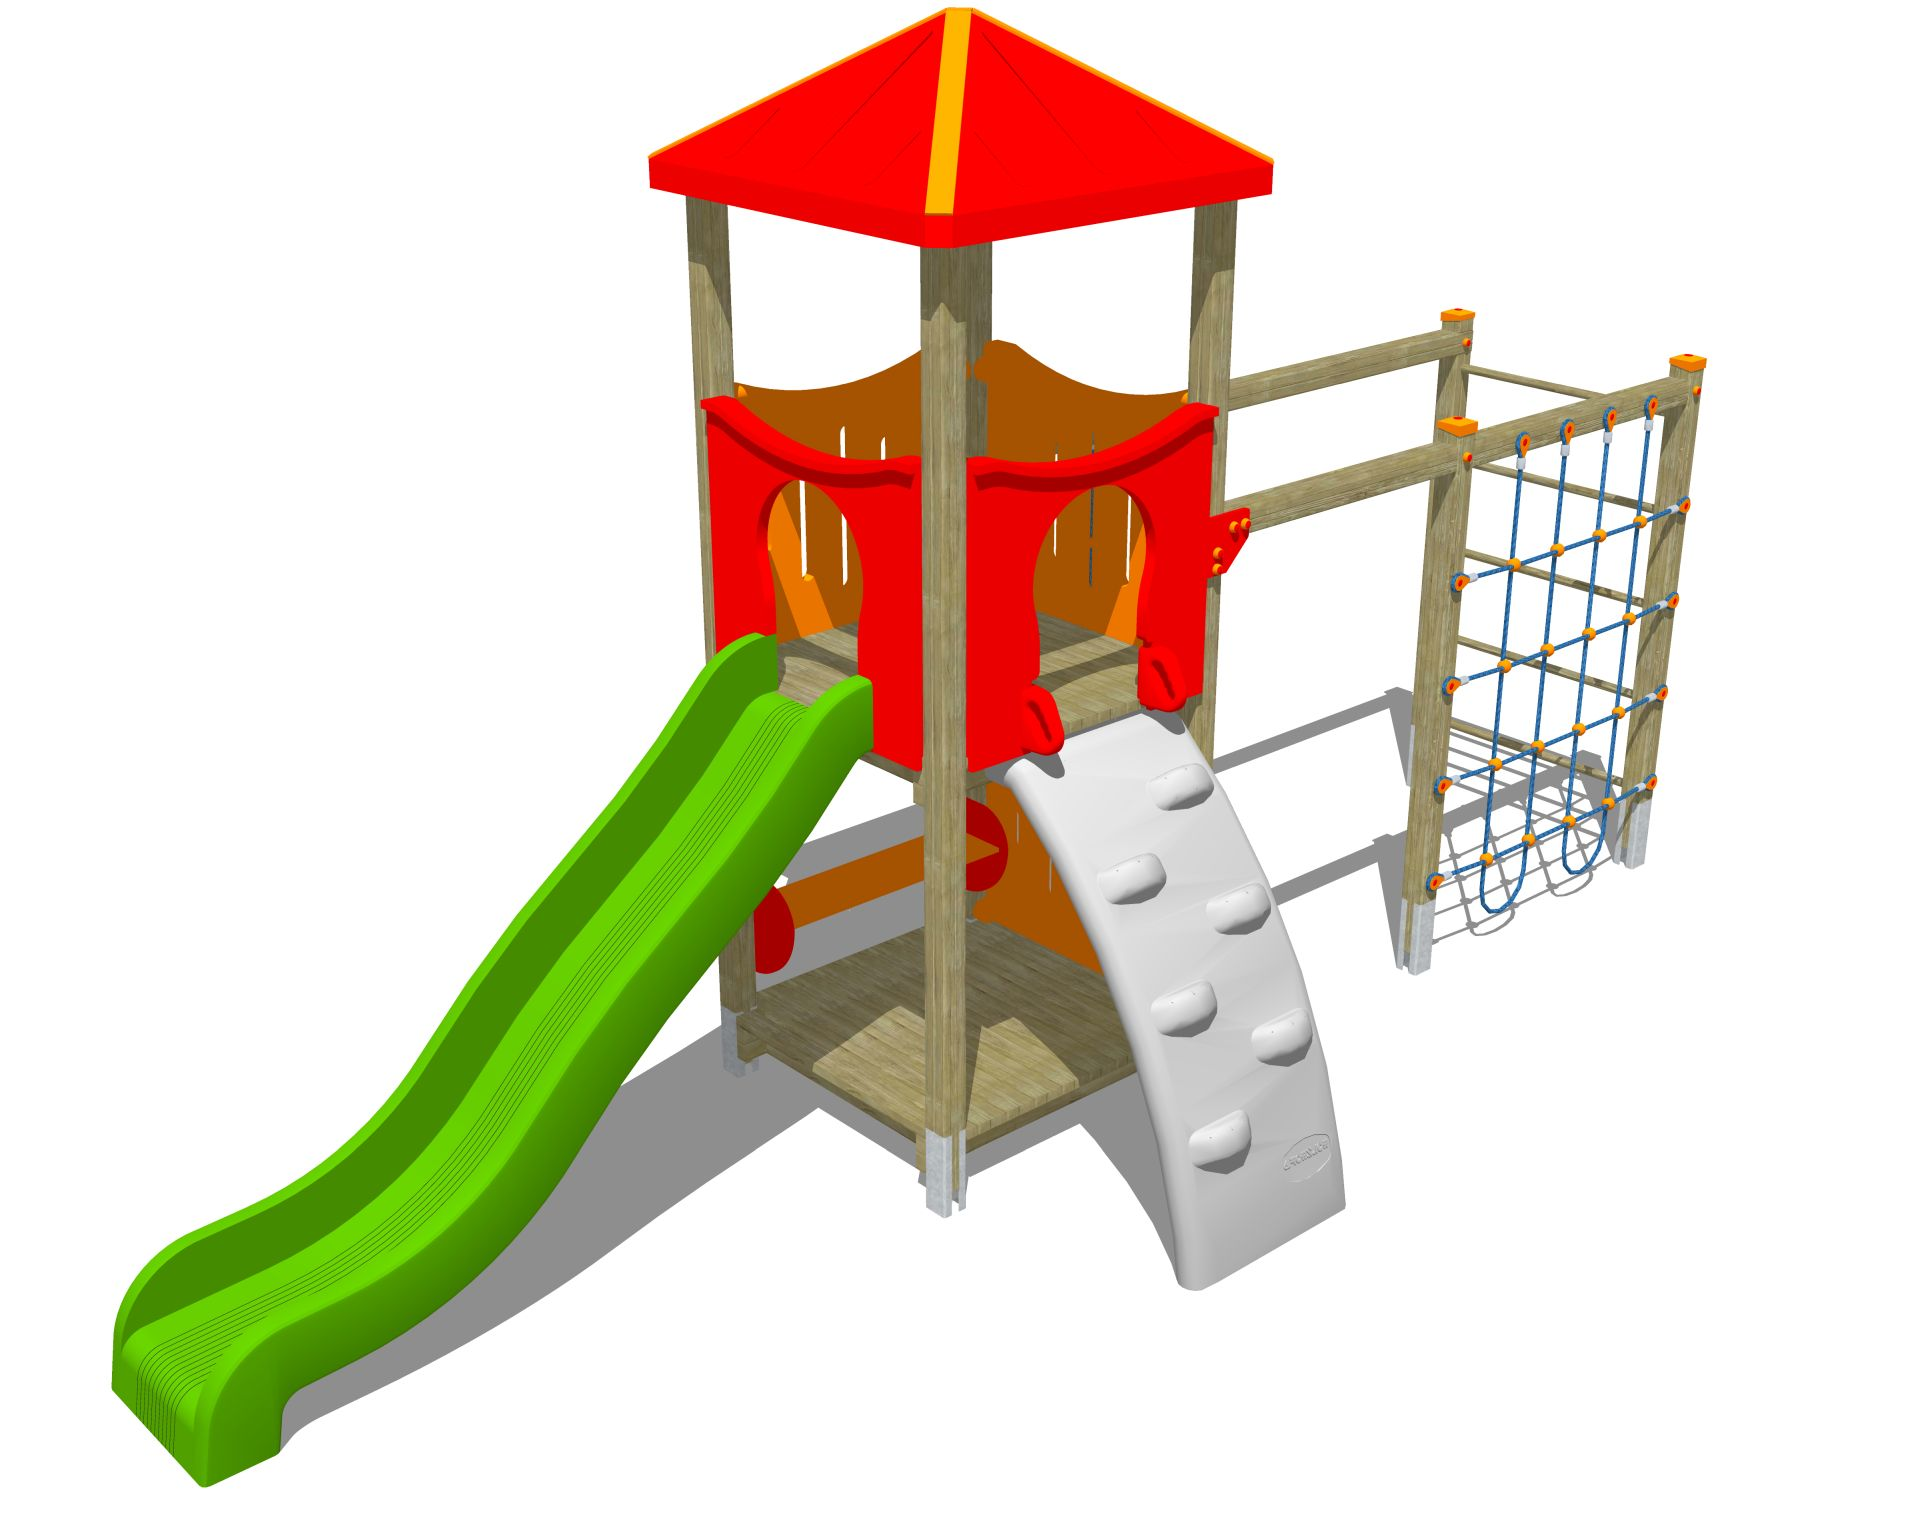 Holzhof MAX & SULTAN Max 1 tower, slide h 144, polyethylene ramp + rope wall climber